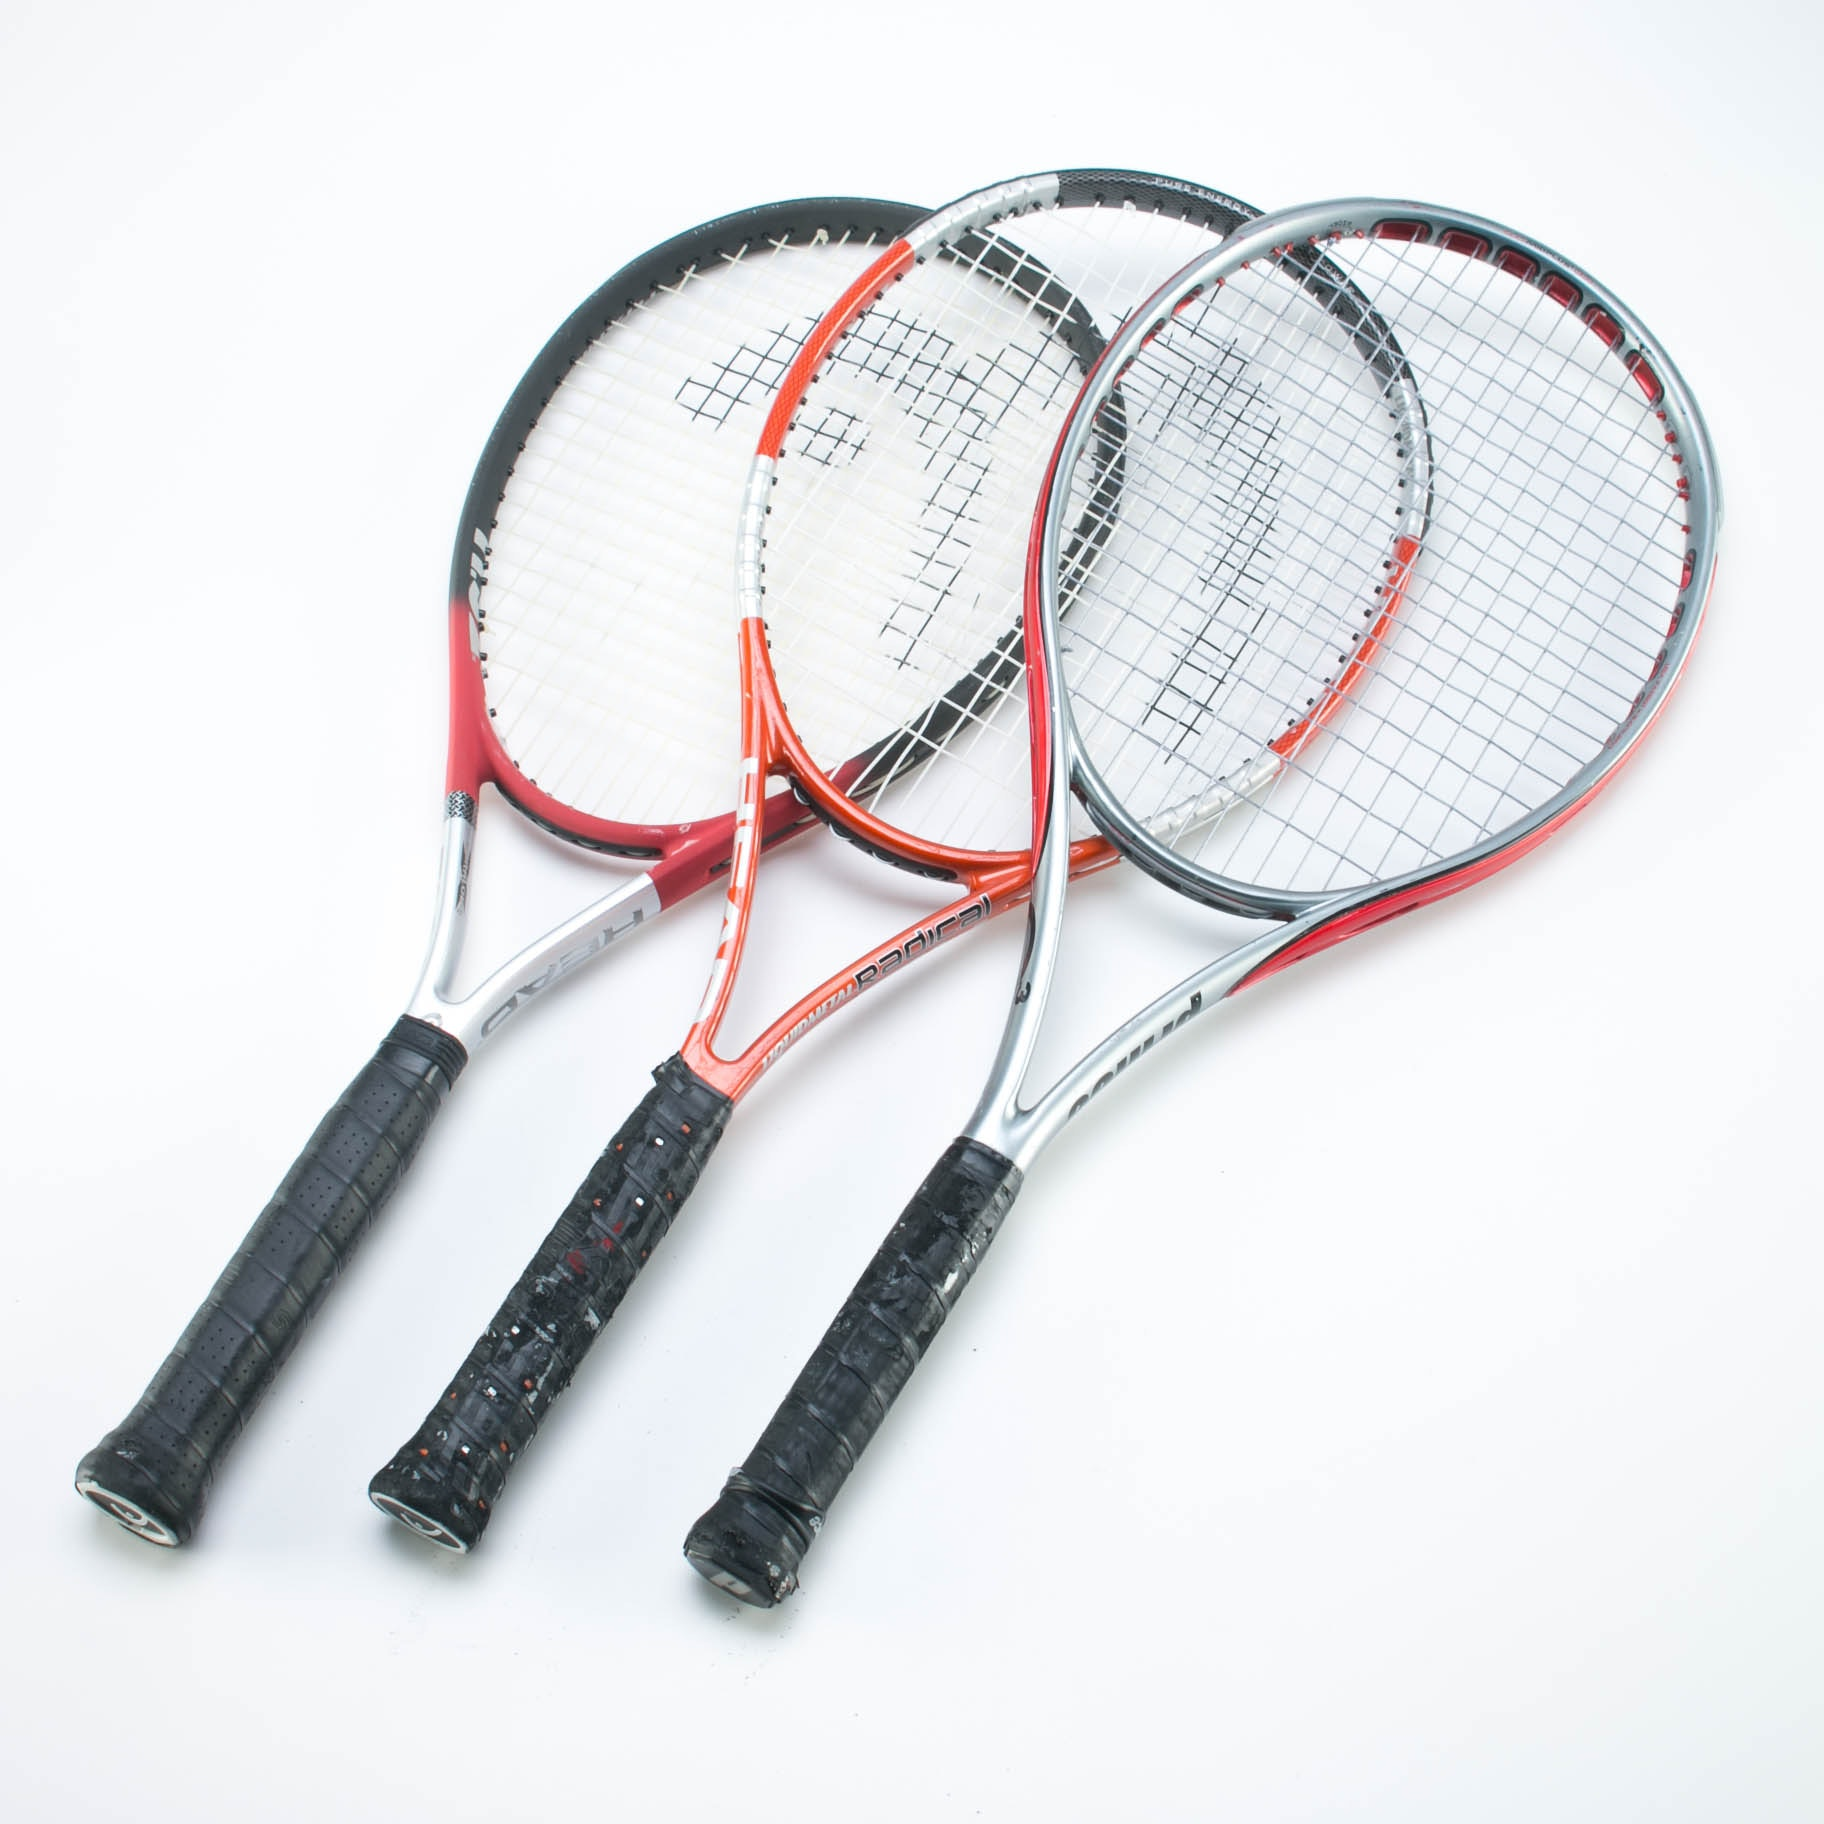 Tennis Rackets, Head Liquidmetal Radical, Head TI S2, and Prince O3 Speedport Red